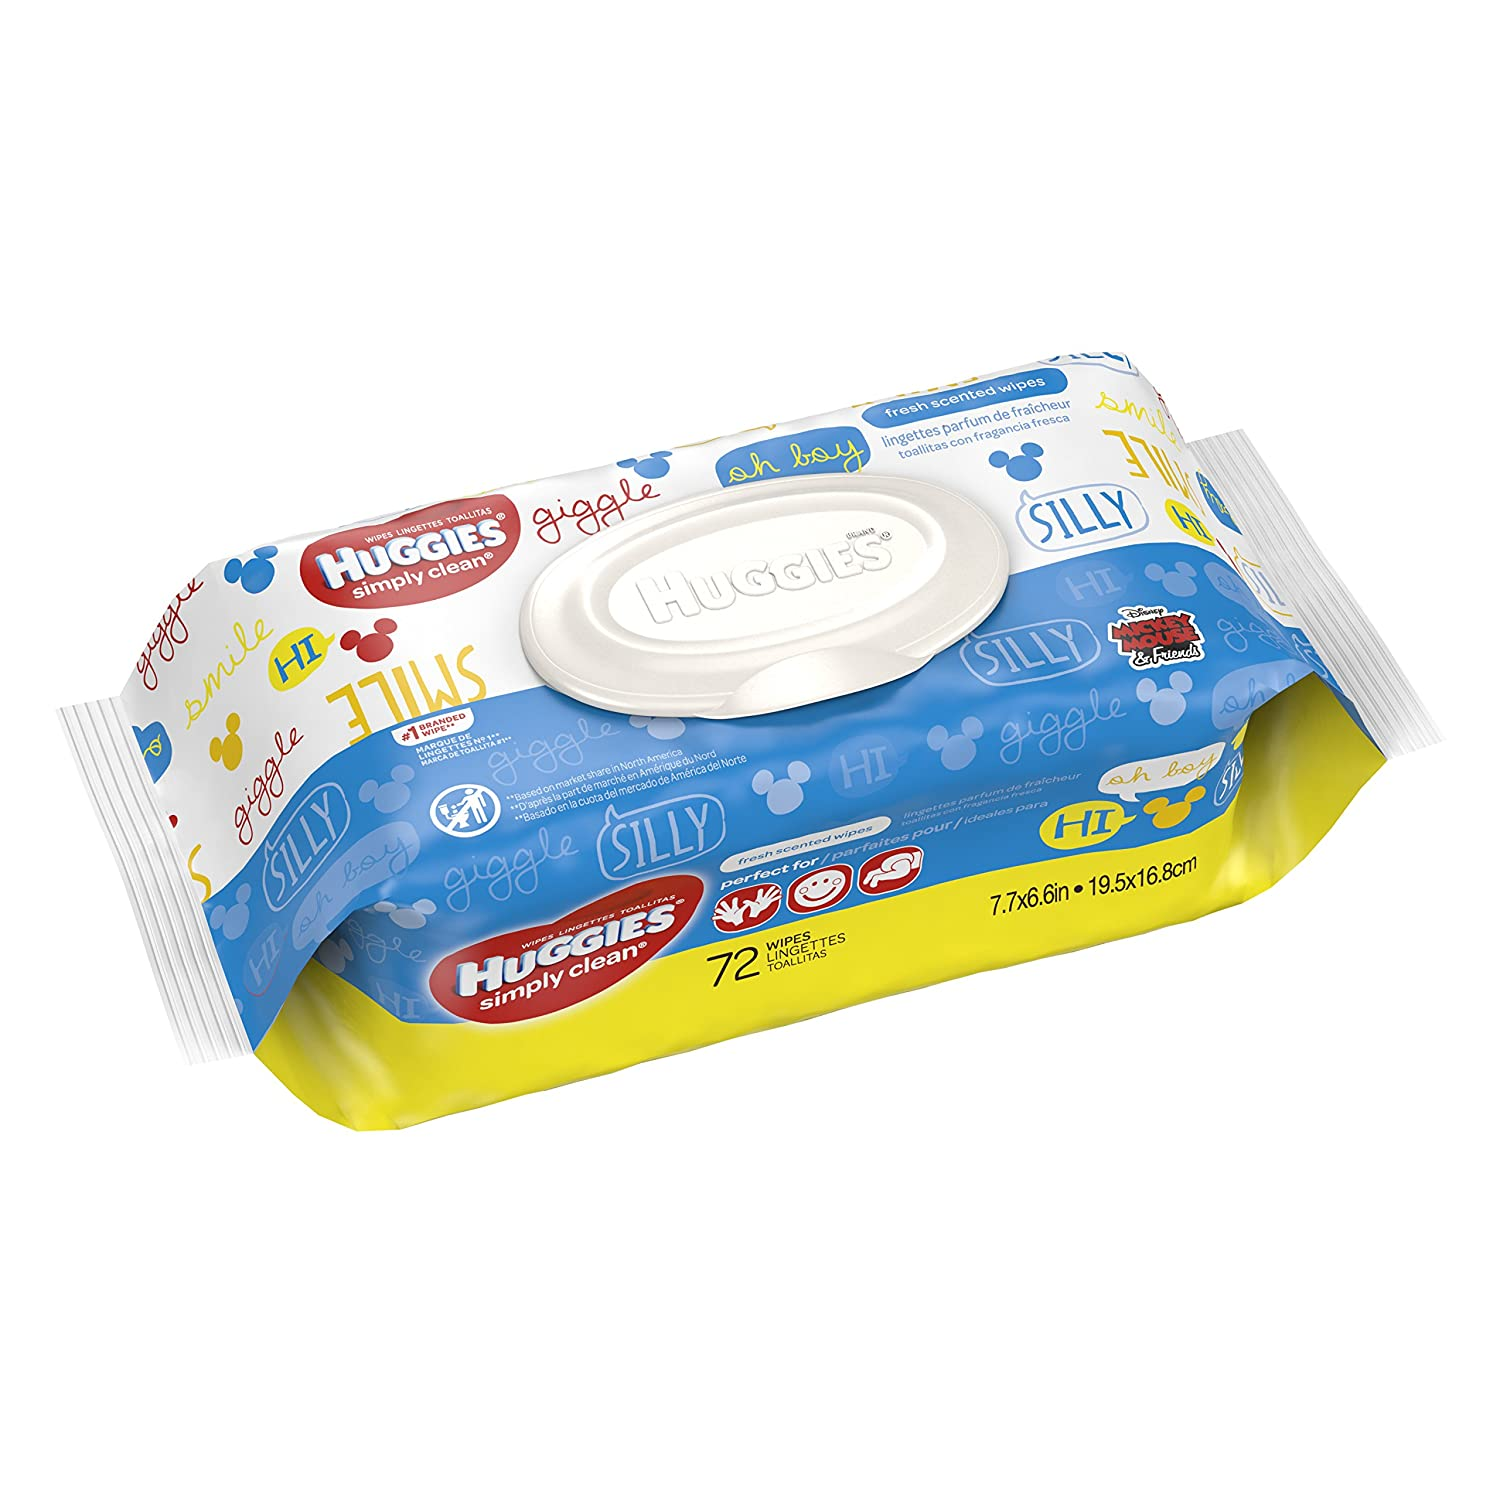 Huggies Simply Clean Fresh Scented Baby Wipes, Soft Pack, 64 Count Kimberly Clark